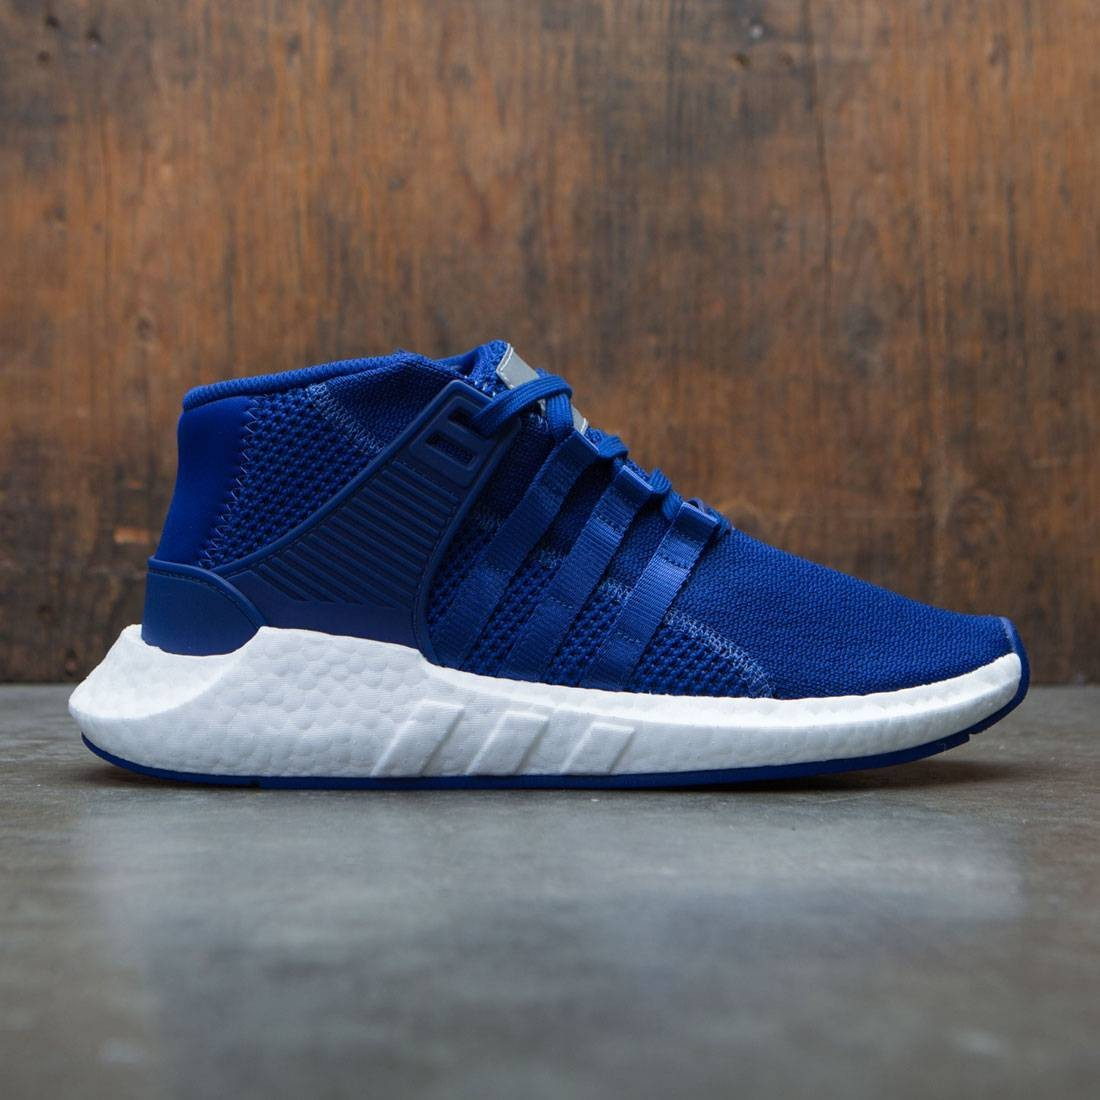 【海外限定】アディダス ミッド スニーカー メンズ靴 【 ADIDAS X MASTERMIND WORLD MEN EQT SUPPORT 93 17 MID BLUE MYSTERY INK FOOTWEAR WHITE 】